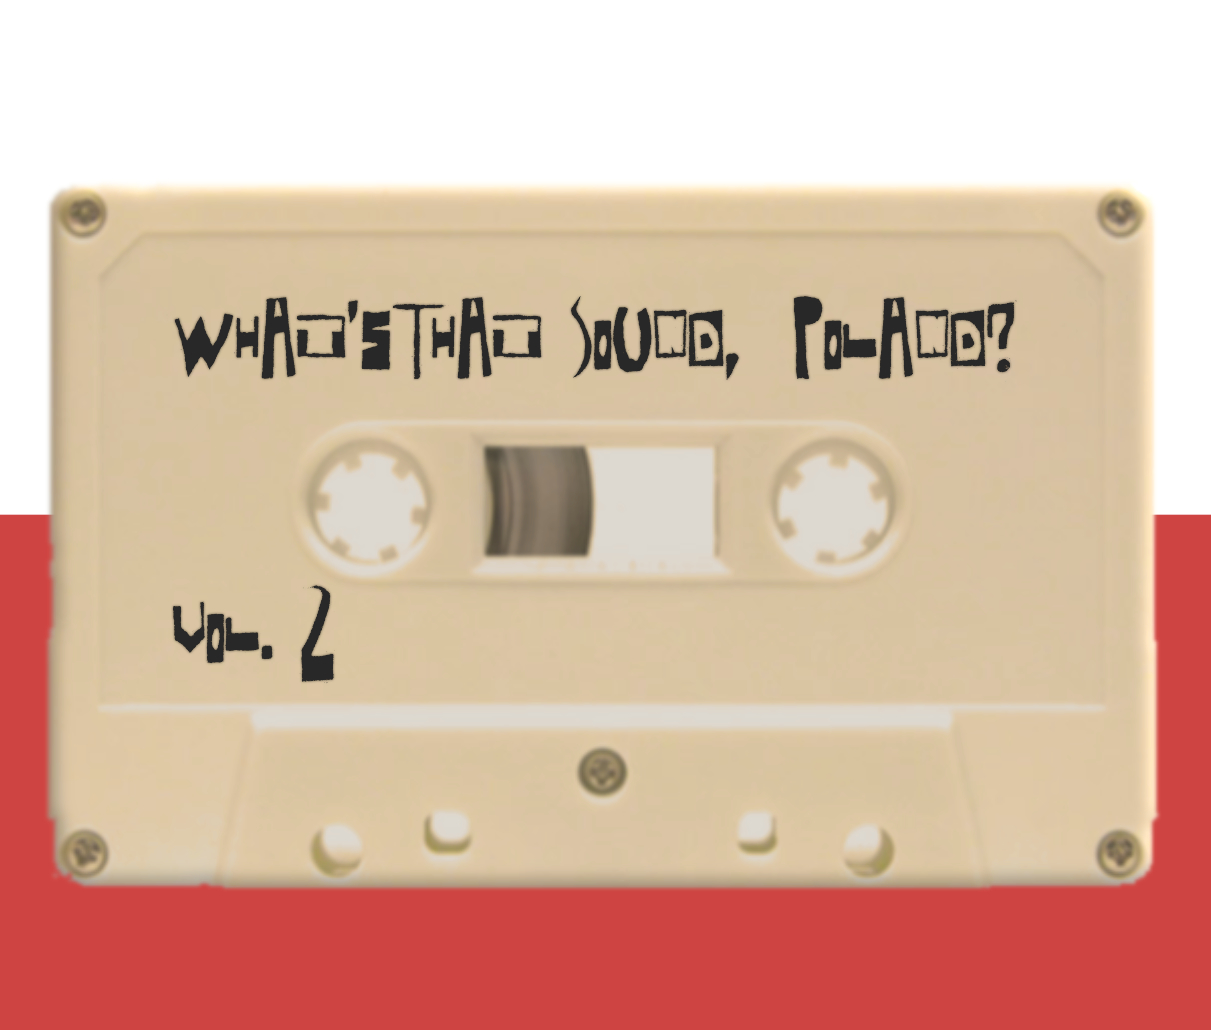 What's that sound Poland? Vol.2 - Special Edition MixTape